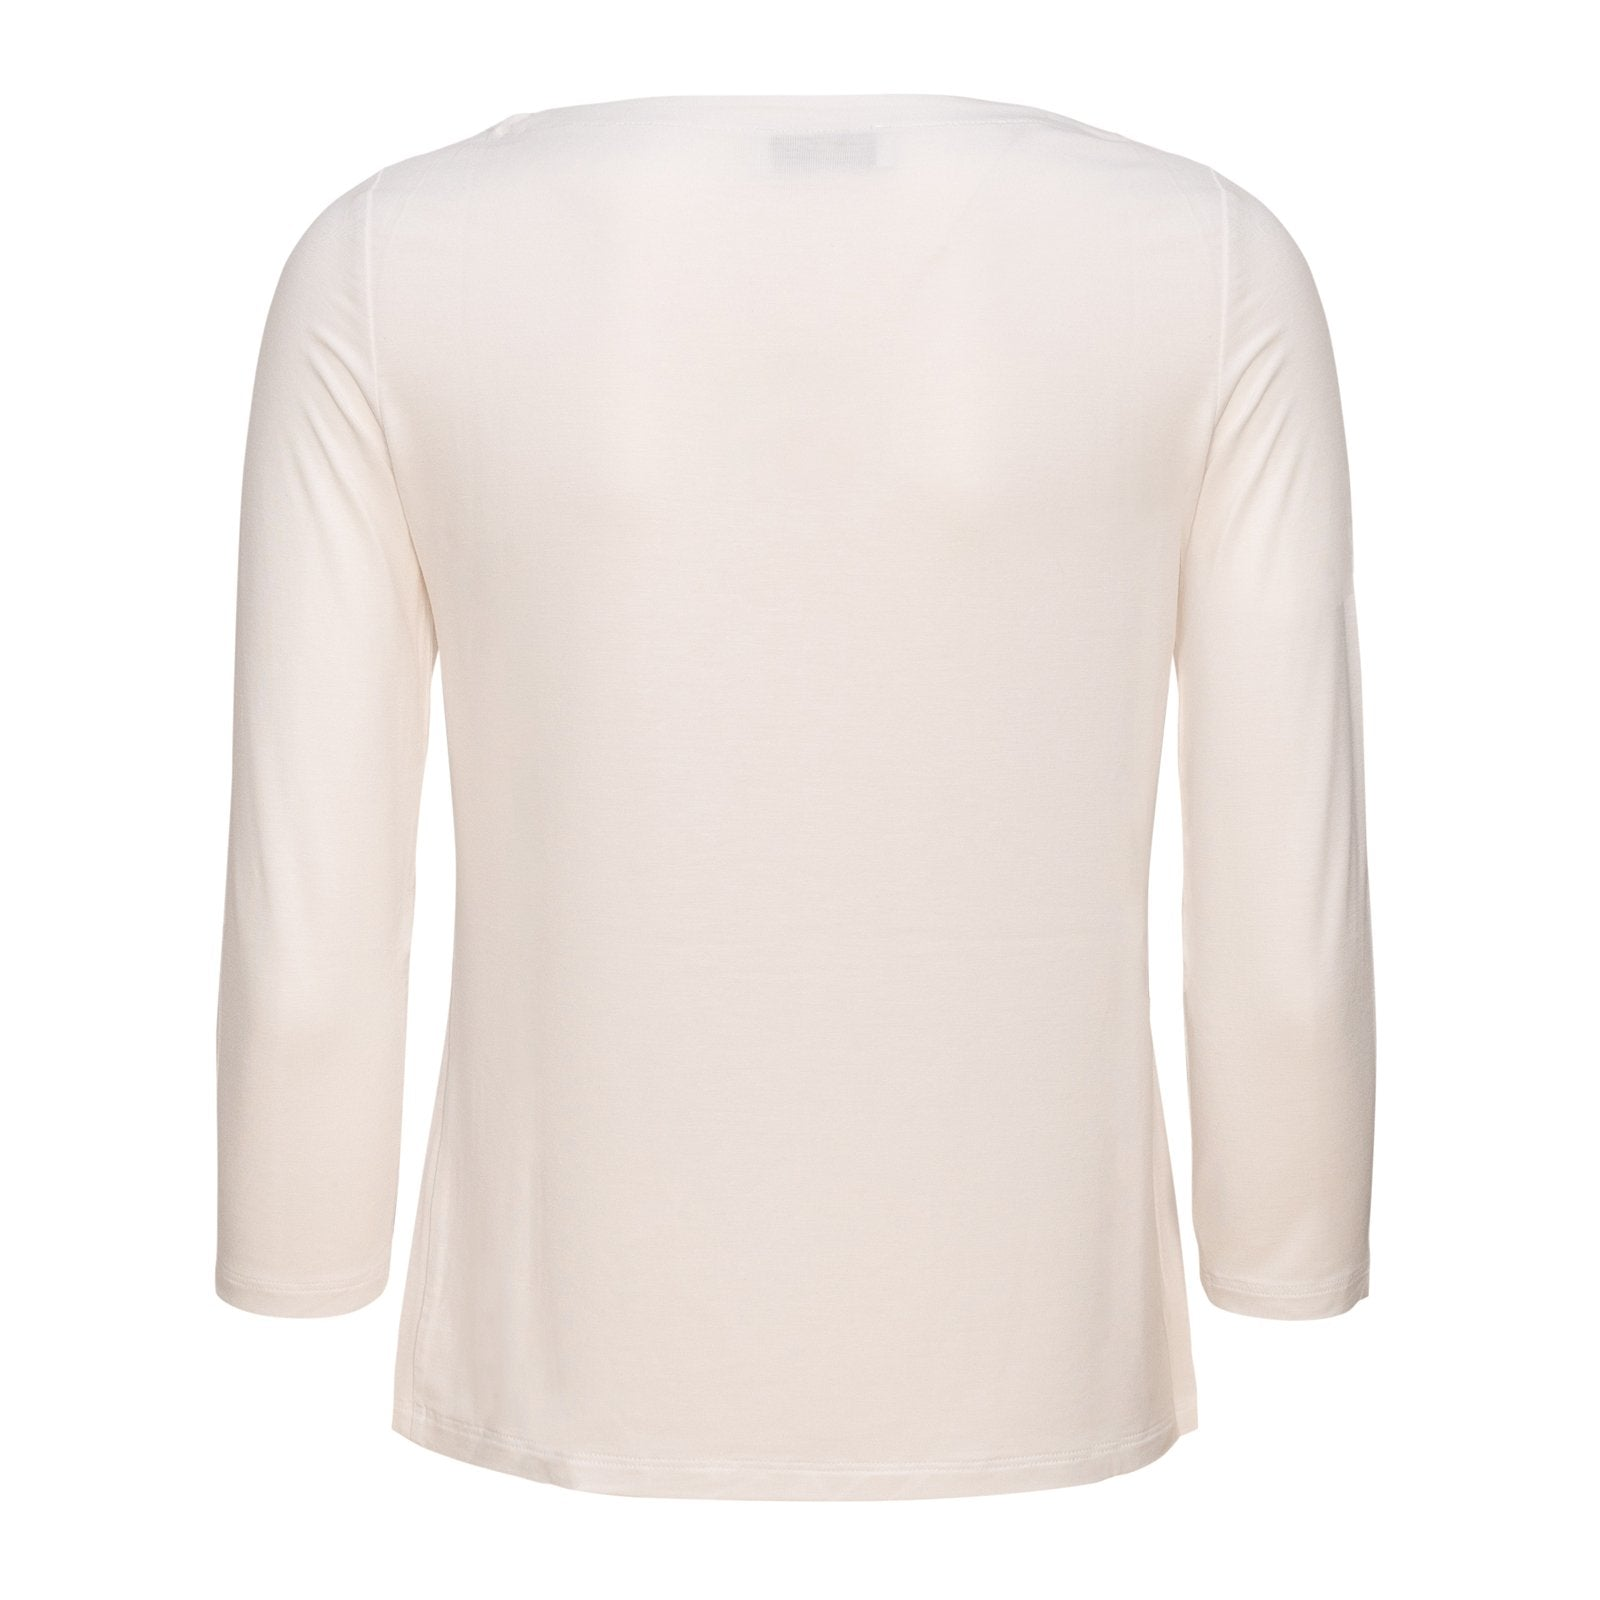 Women Barchetta Neck White Knitwear PUR1242 - Jennifer Tattanelli